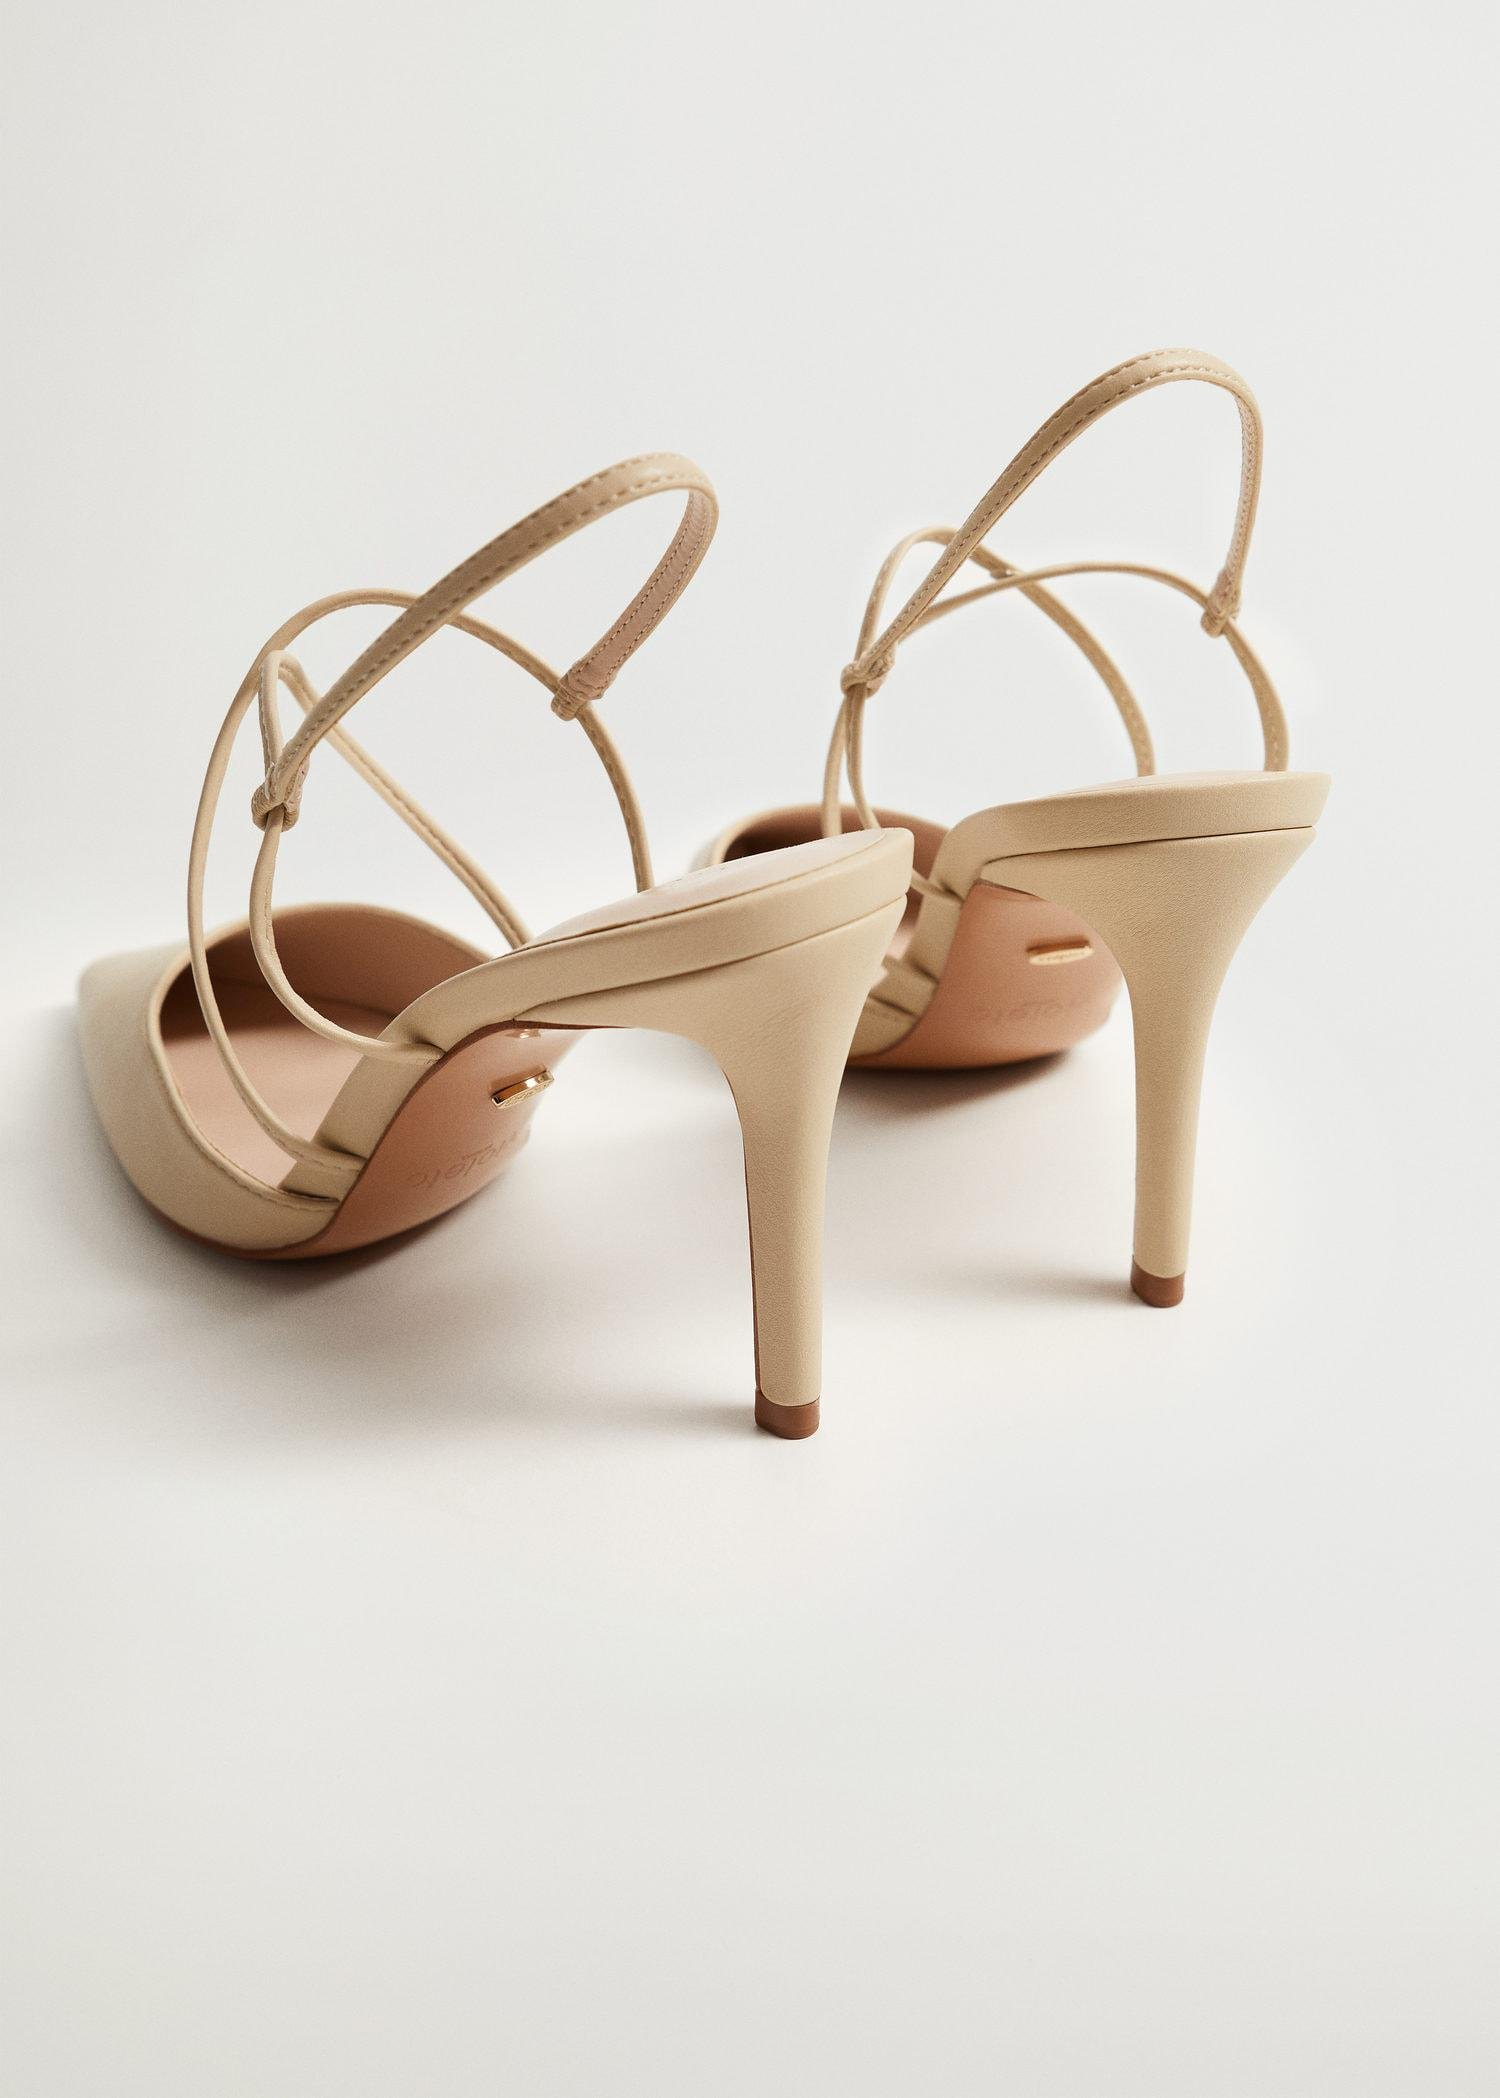 High-heeled shoes with straps 2